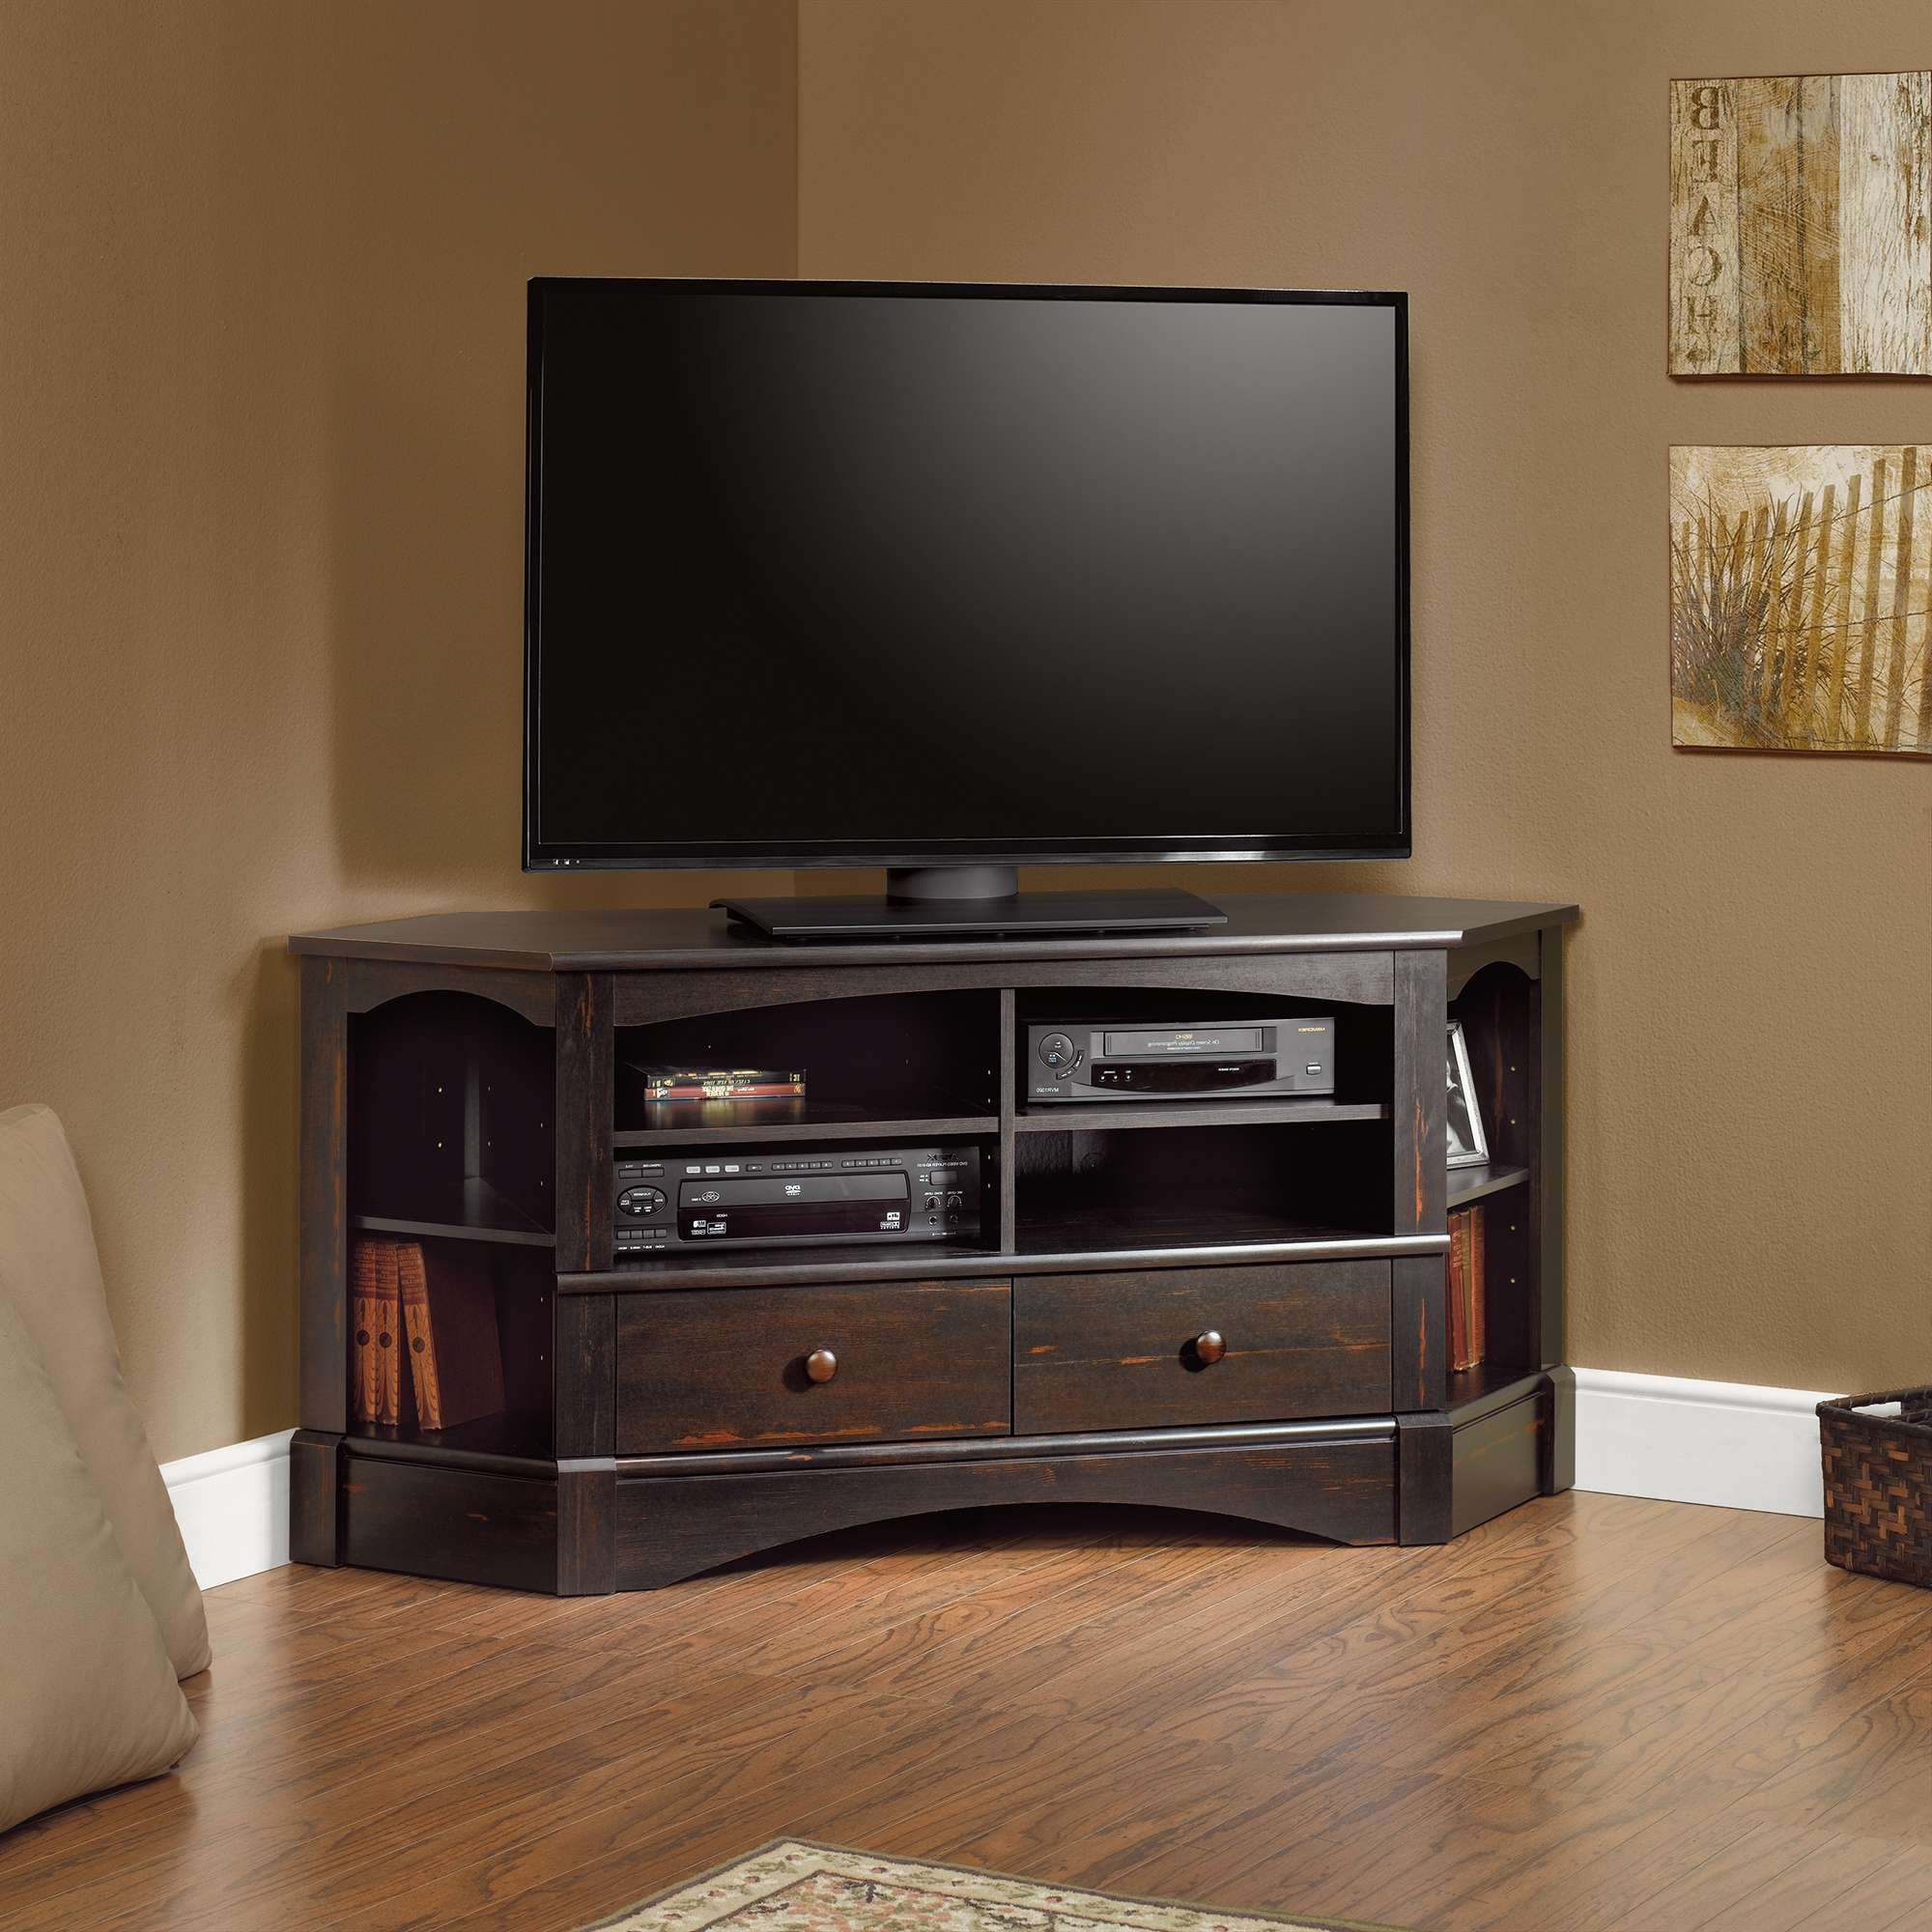 Small Wooden Corner Tv Stand Console Cabinet With Fireplace Regarding Wooden Corner Tv Cabinets (View 18 of 20)